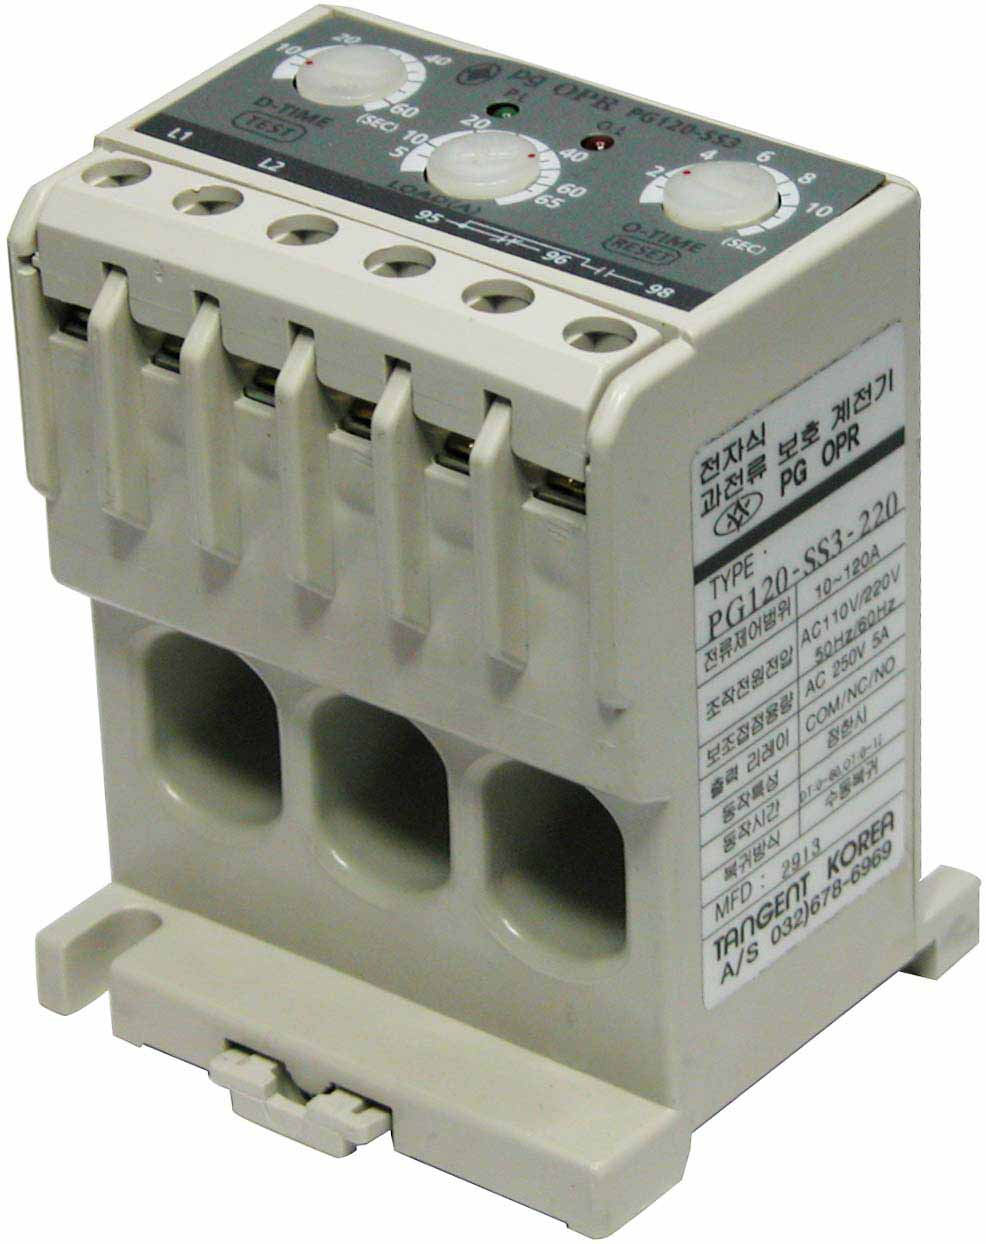 Motor Protection Relay Buy Motor Protection Relay Product On - Protection relays and circuit breakers